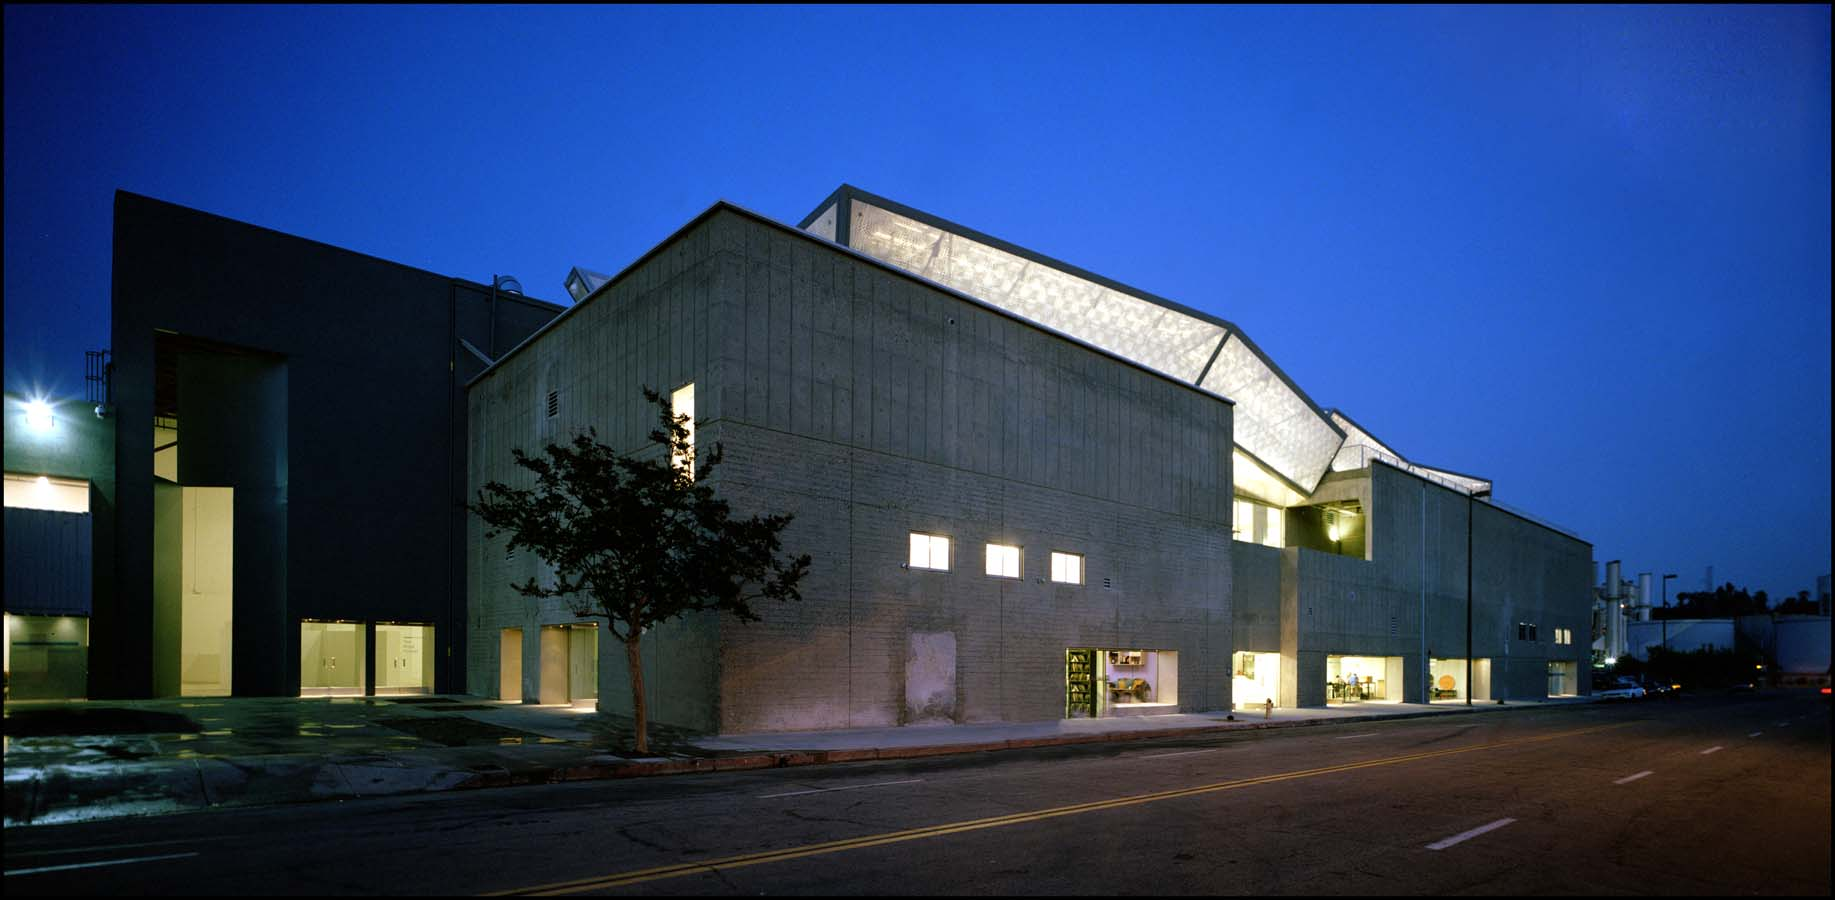 Art Center's south campus, a Daly-Genik renovation of a former supersonic jet testing facility.